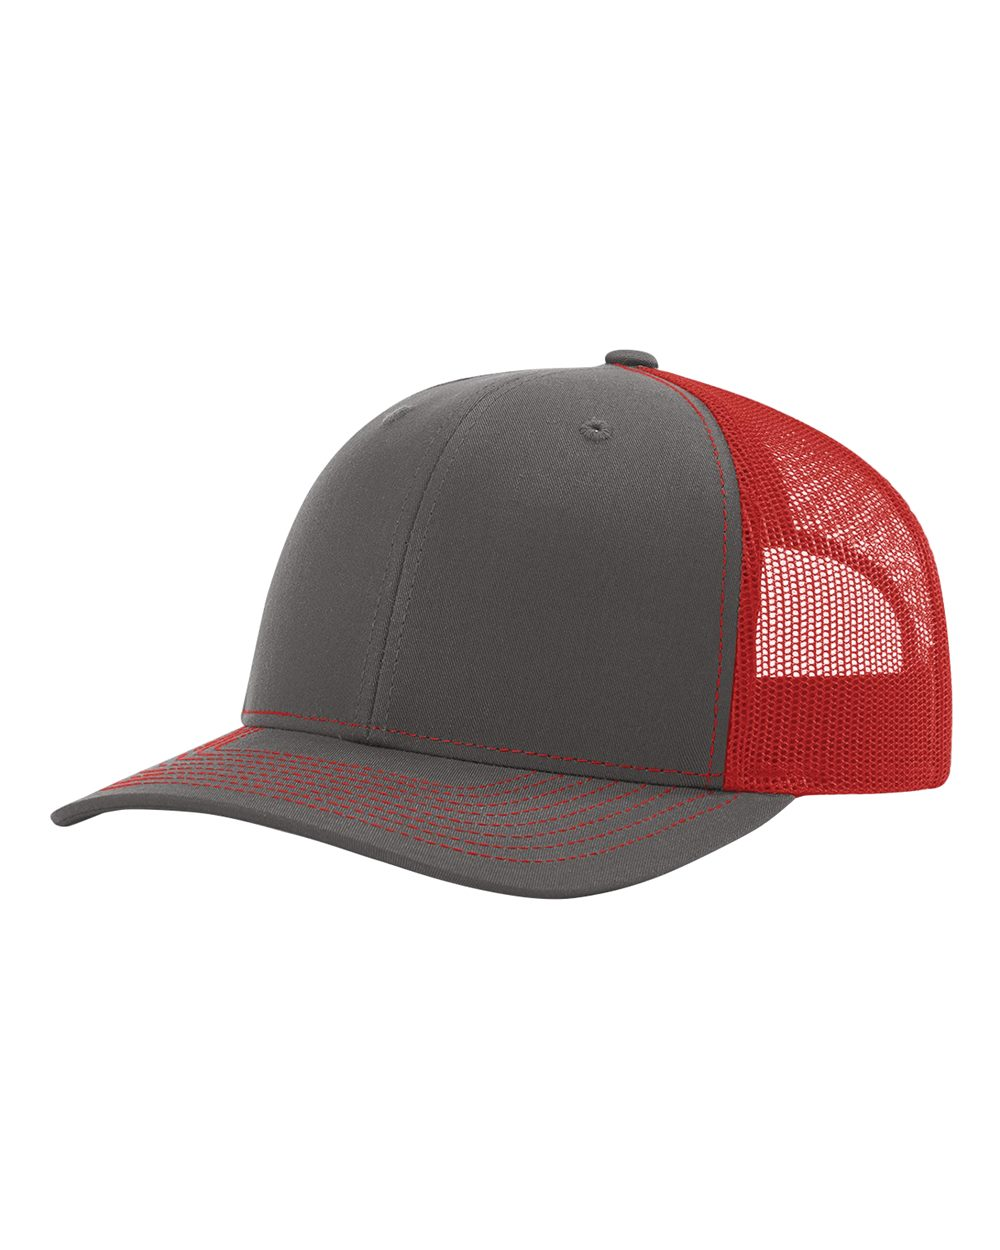 Charcoal/ Red